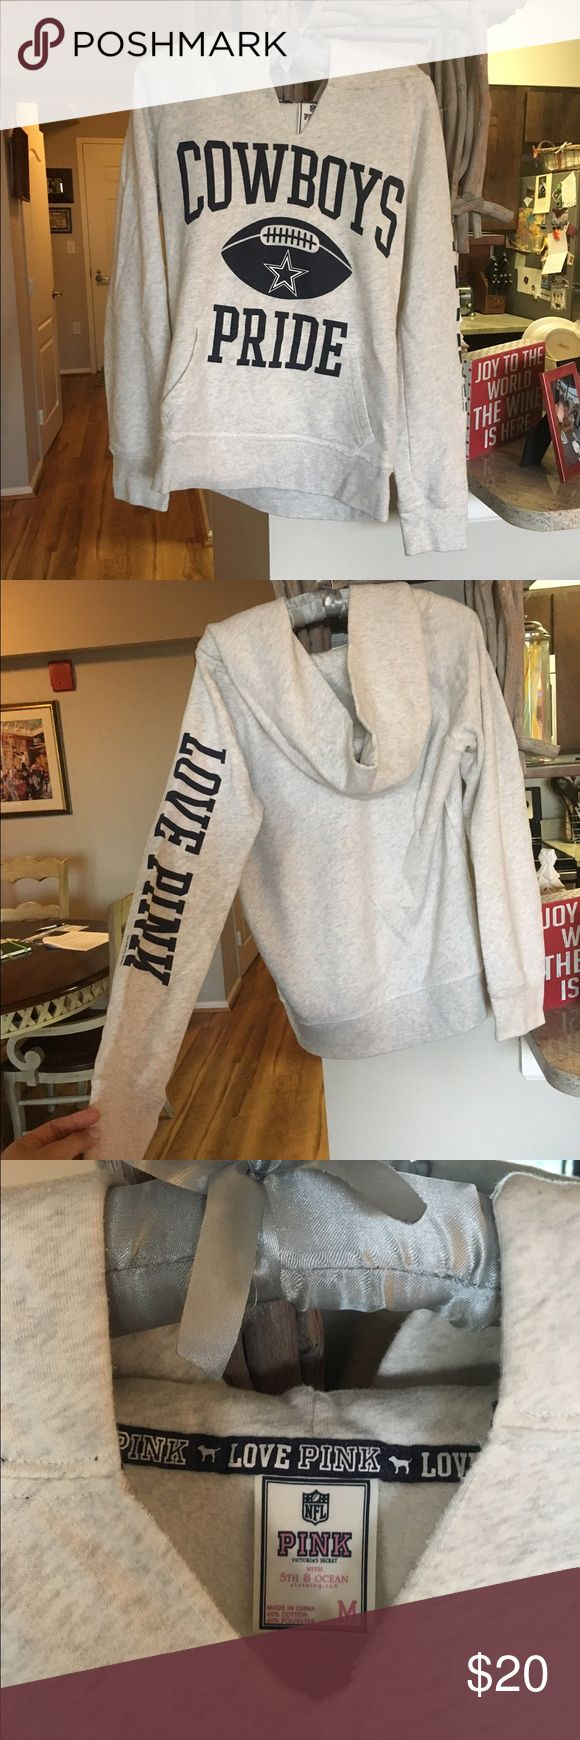 """Women's Dallas Cowboys Hoodie Entry worn, very comfortable hooded sweatshirt. Size medium, by PINK, Victoria's Secret with 5th & Ocean clothing line. One sleeve has """"LOVE PINK"""" written on it. Top to bottom approx 24.5"""". No stains, tears or rips. Very comfy! Color is a light heather creamy grey. Front double entry pocket. PINK Victoria's Secret Sweaters"""